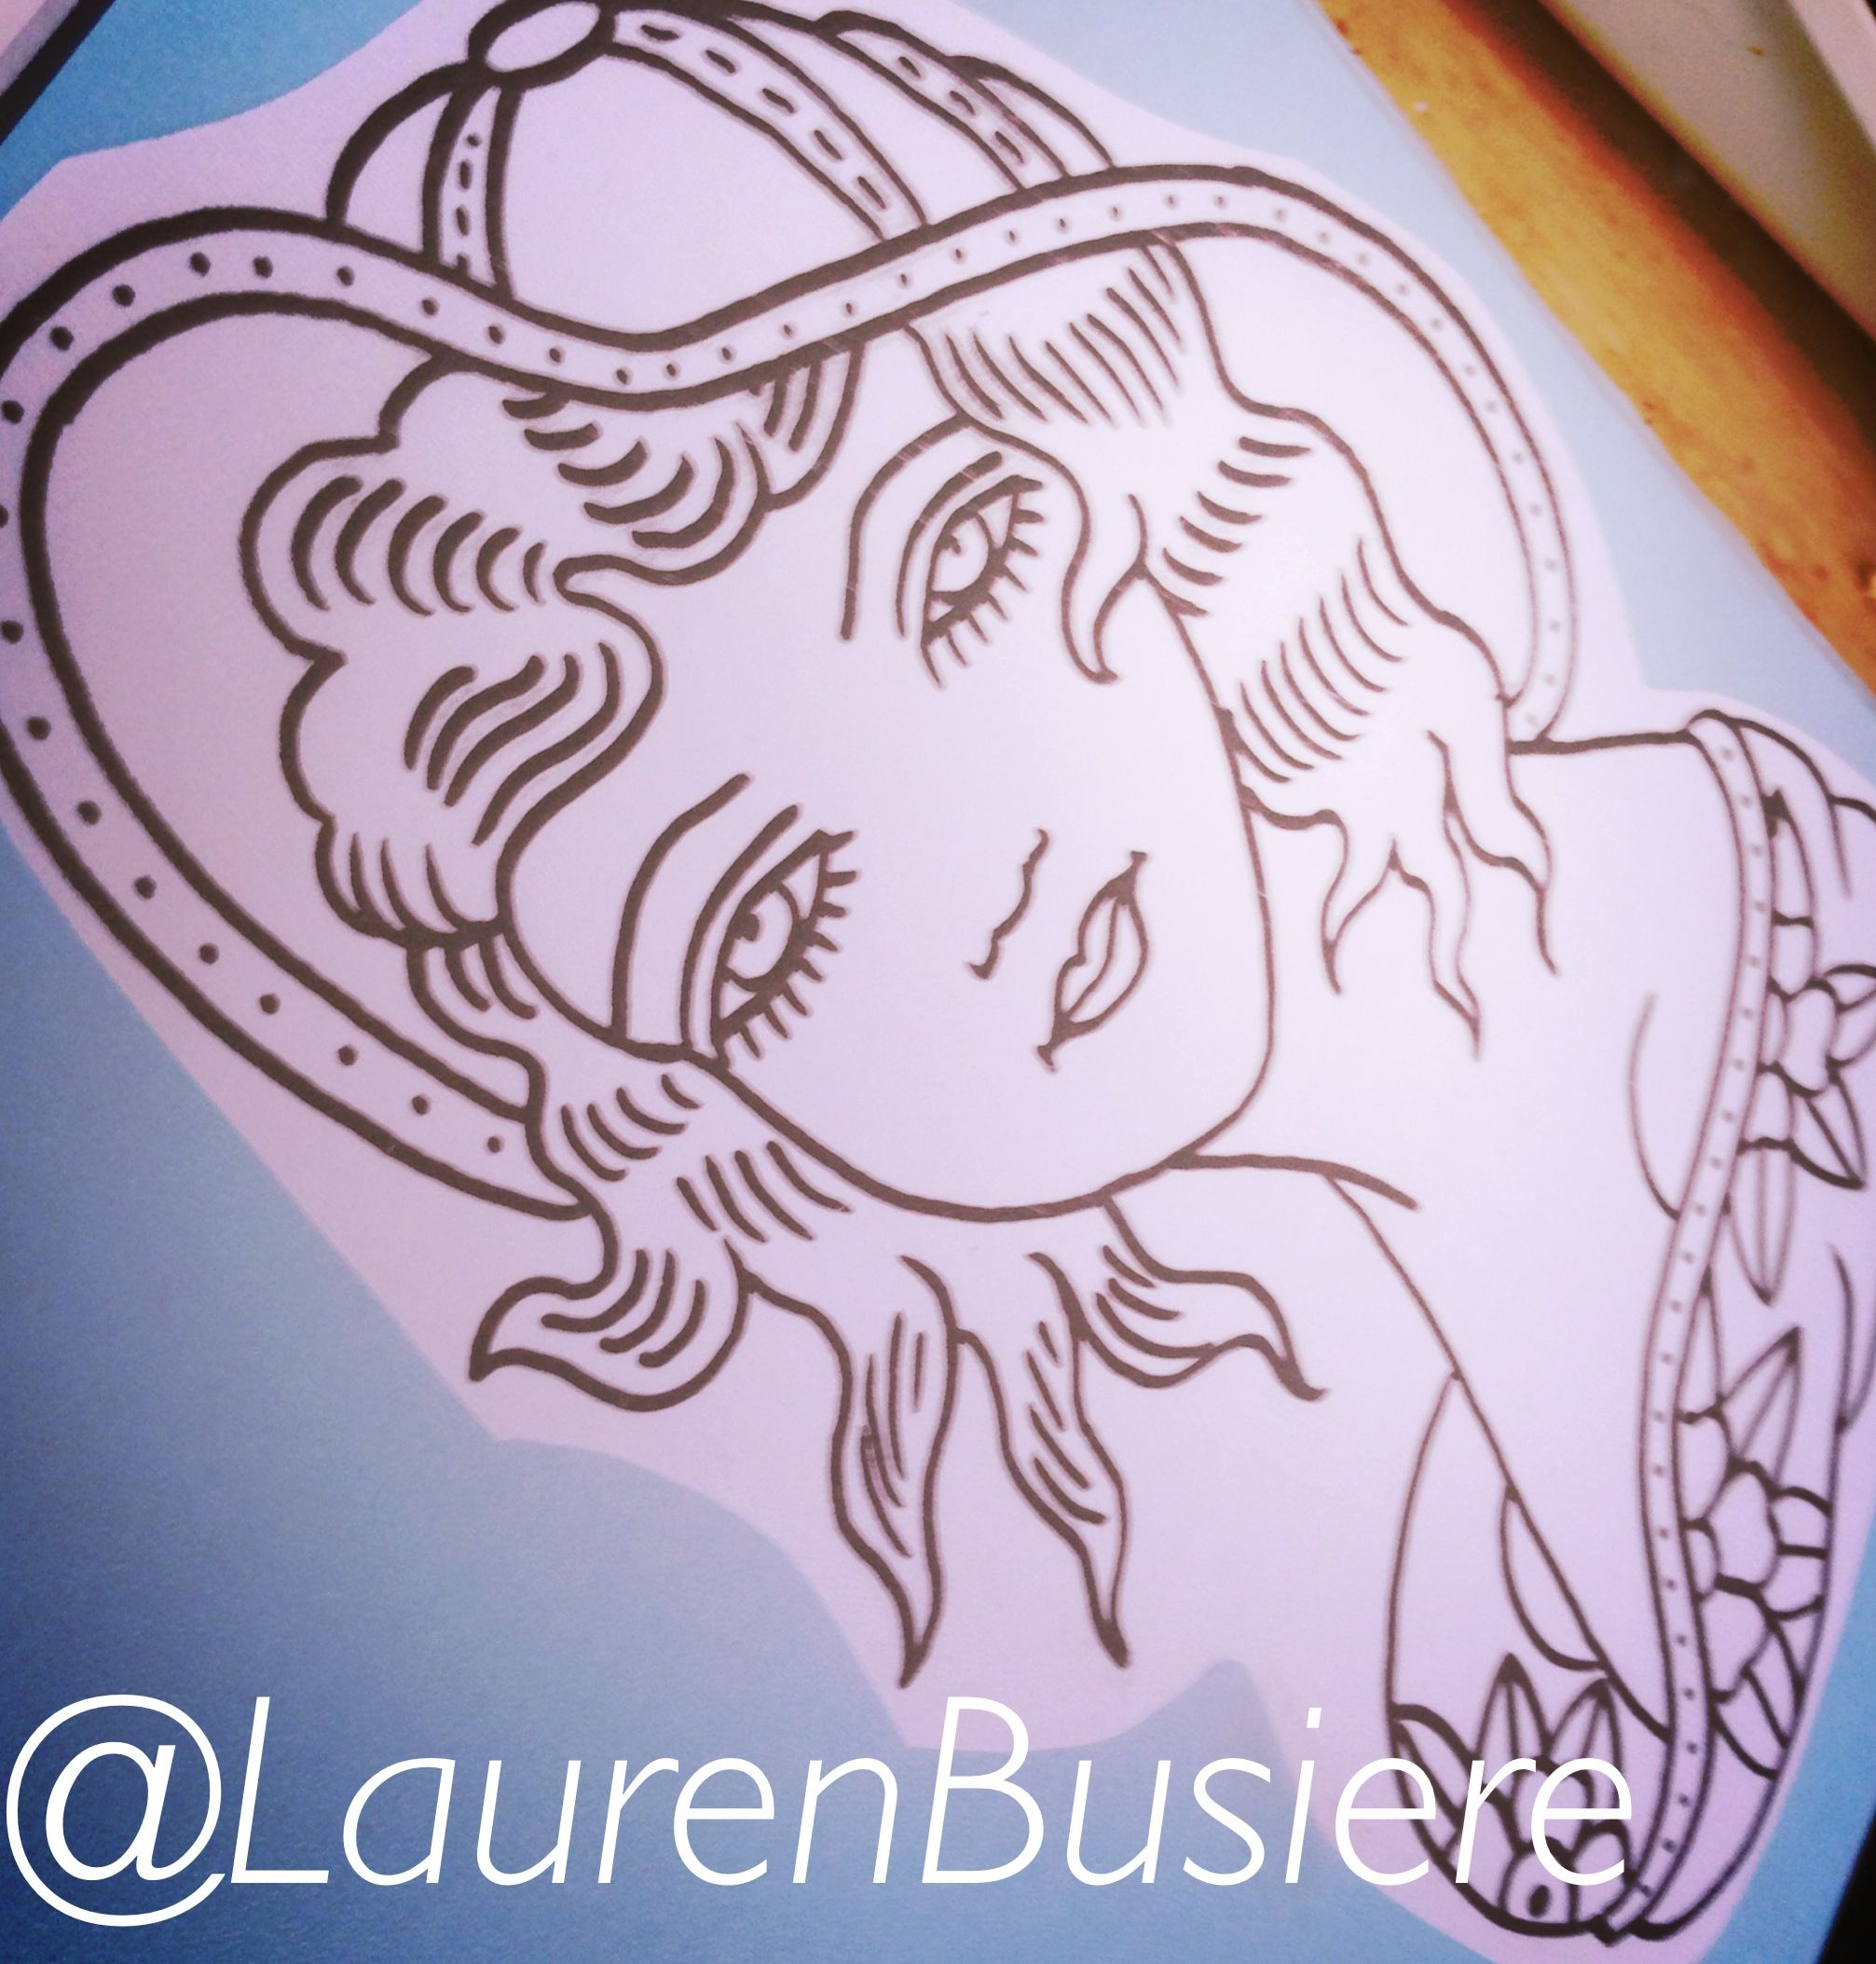 Tattoo outlines by Lauren Busiere; madebylaurenb@gmail.com for booking #tattoo #tattoos #drawing #tattooart #linebook2014 #flashart #laurenbusiere #laurenb #ragtimetattoo #stlouis #traditional #oldschool #girl #girltattoo #lady #ladyhead #ladytattoo